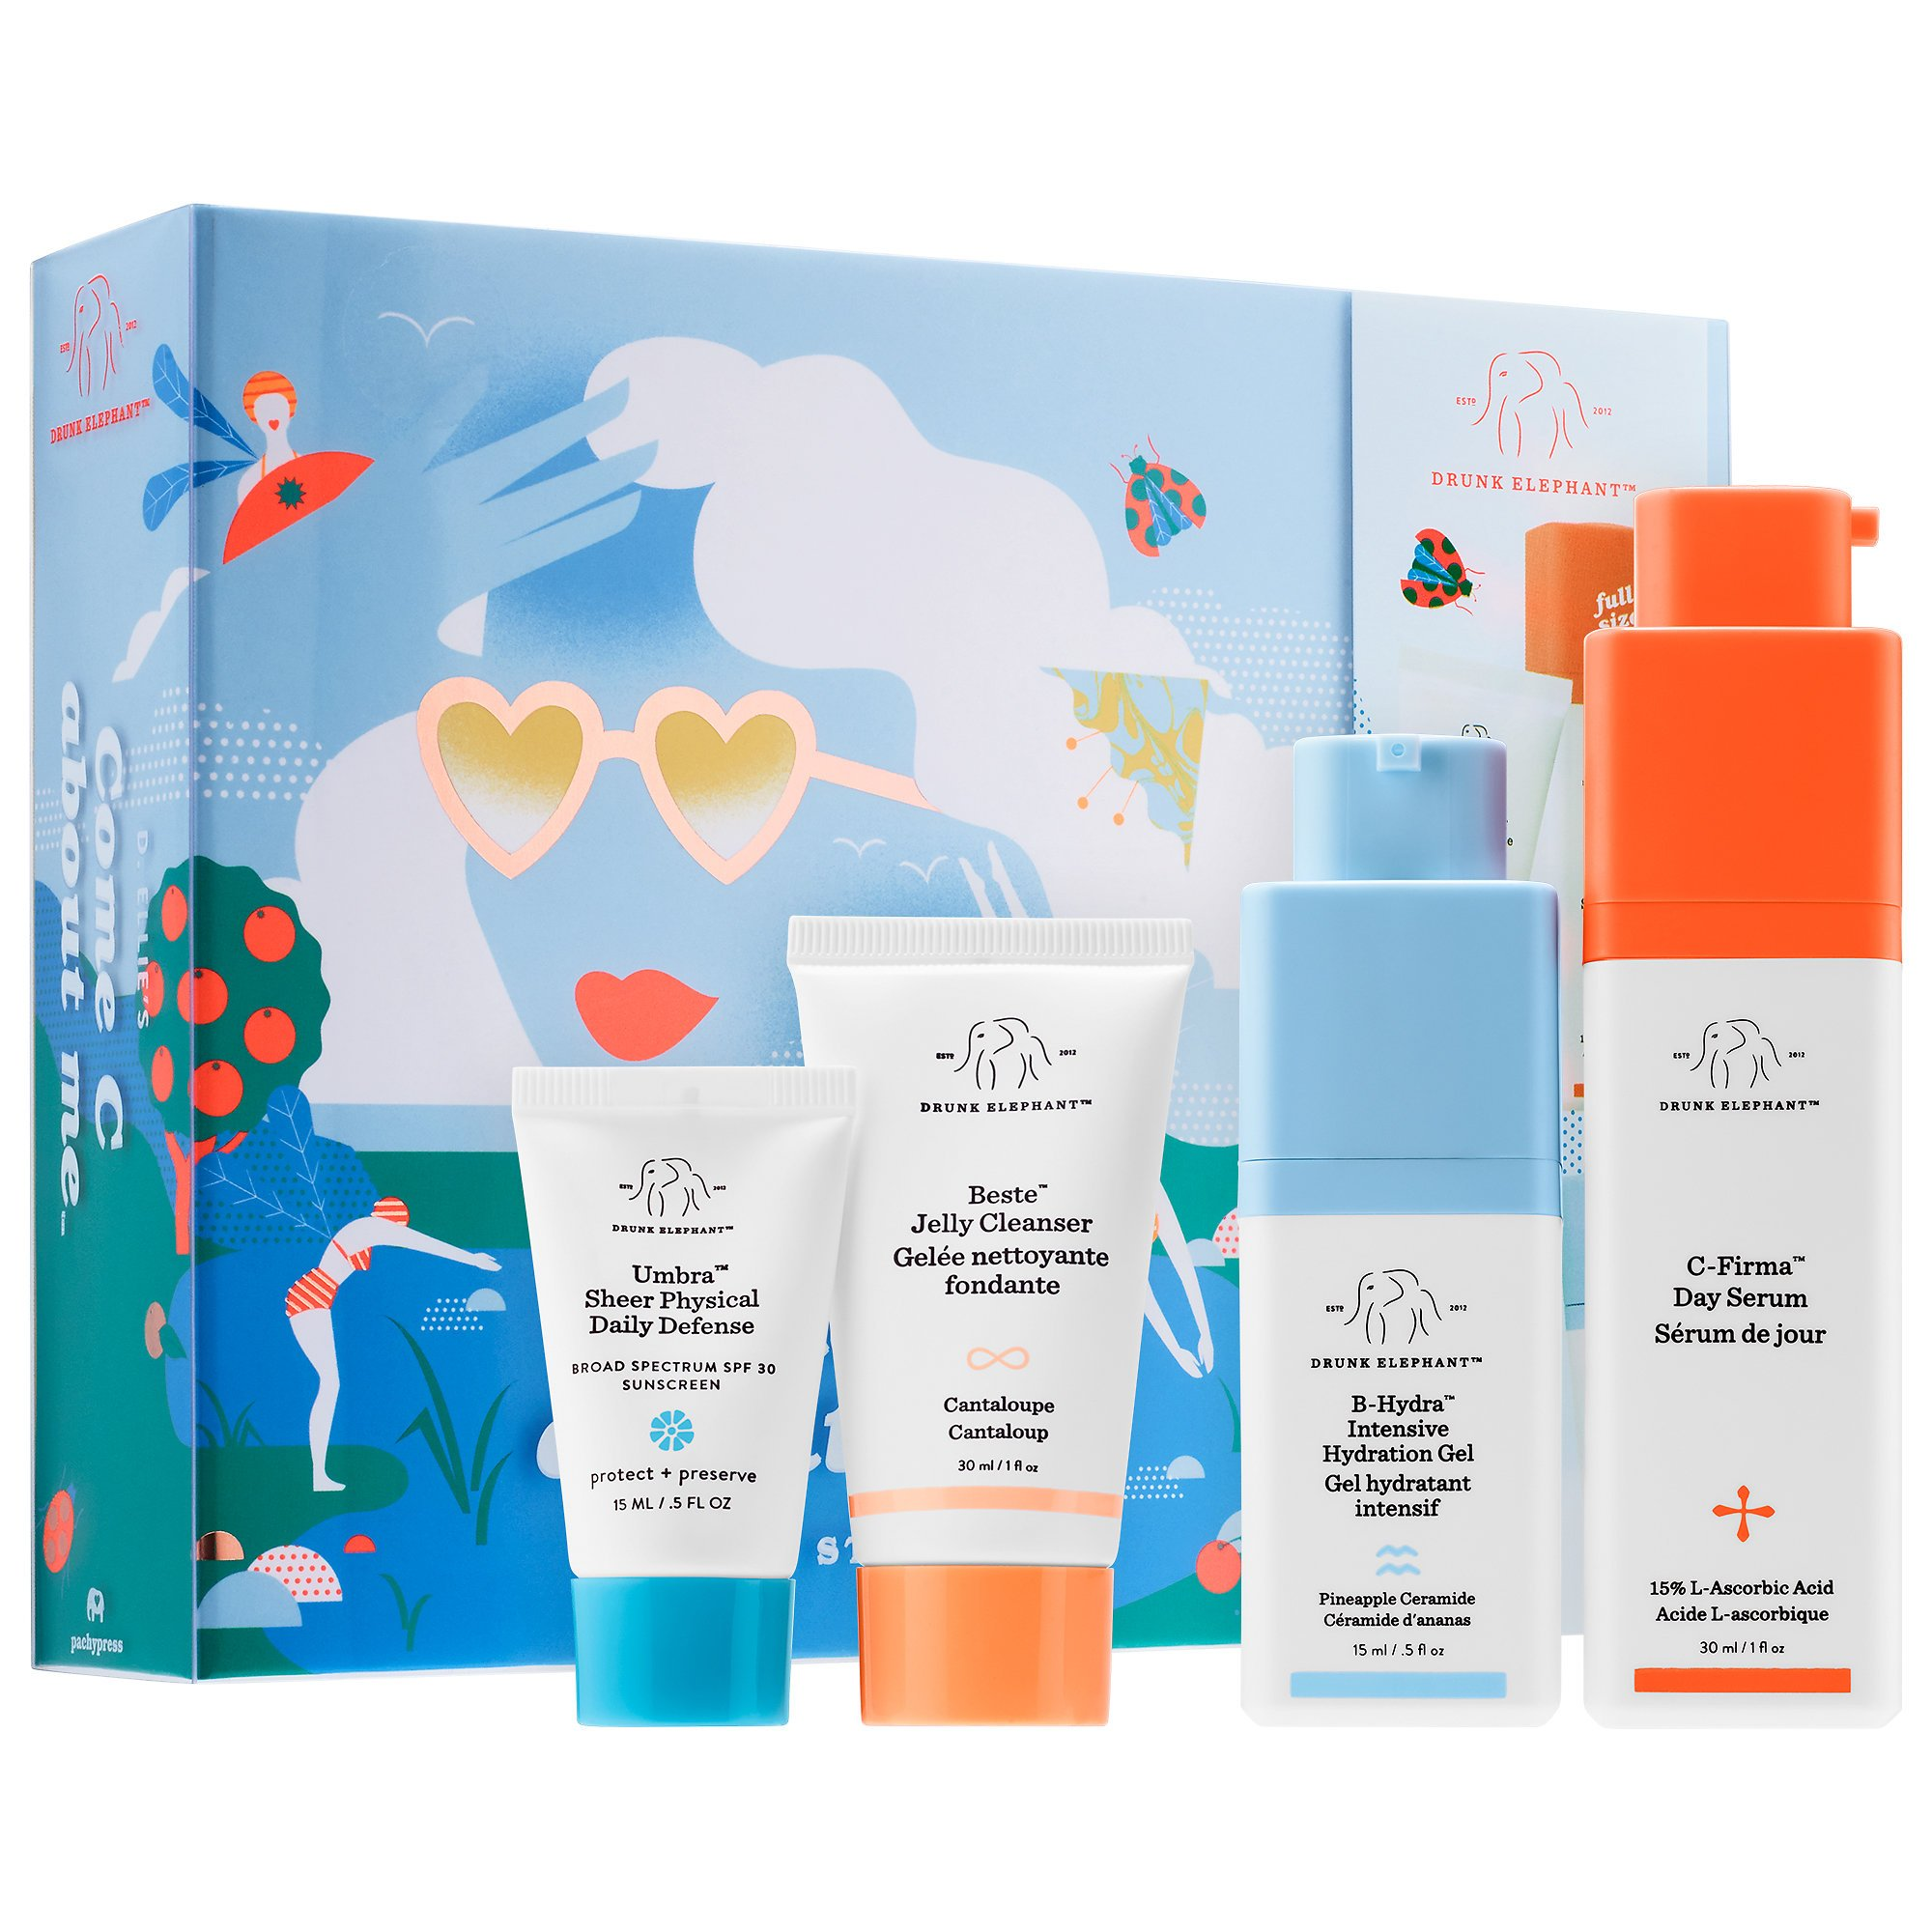 DRUNK ELEPHANT Volume 2: Come C About Me/C-Firma Day Serum/B-Hydra Intensive Hydration Gel